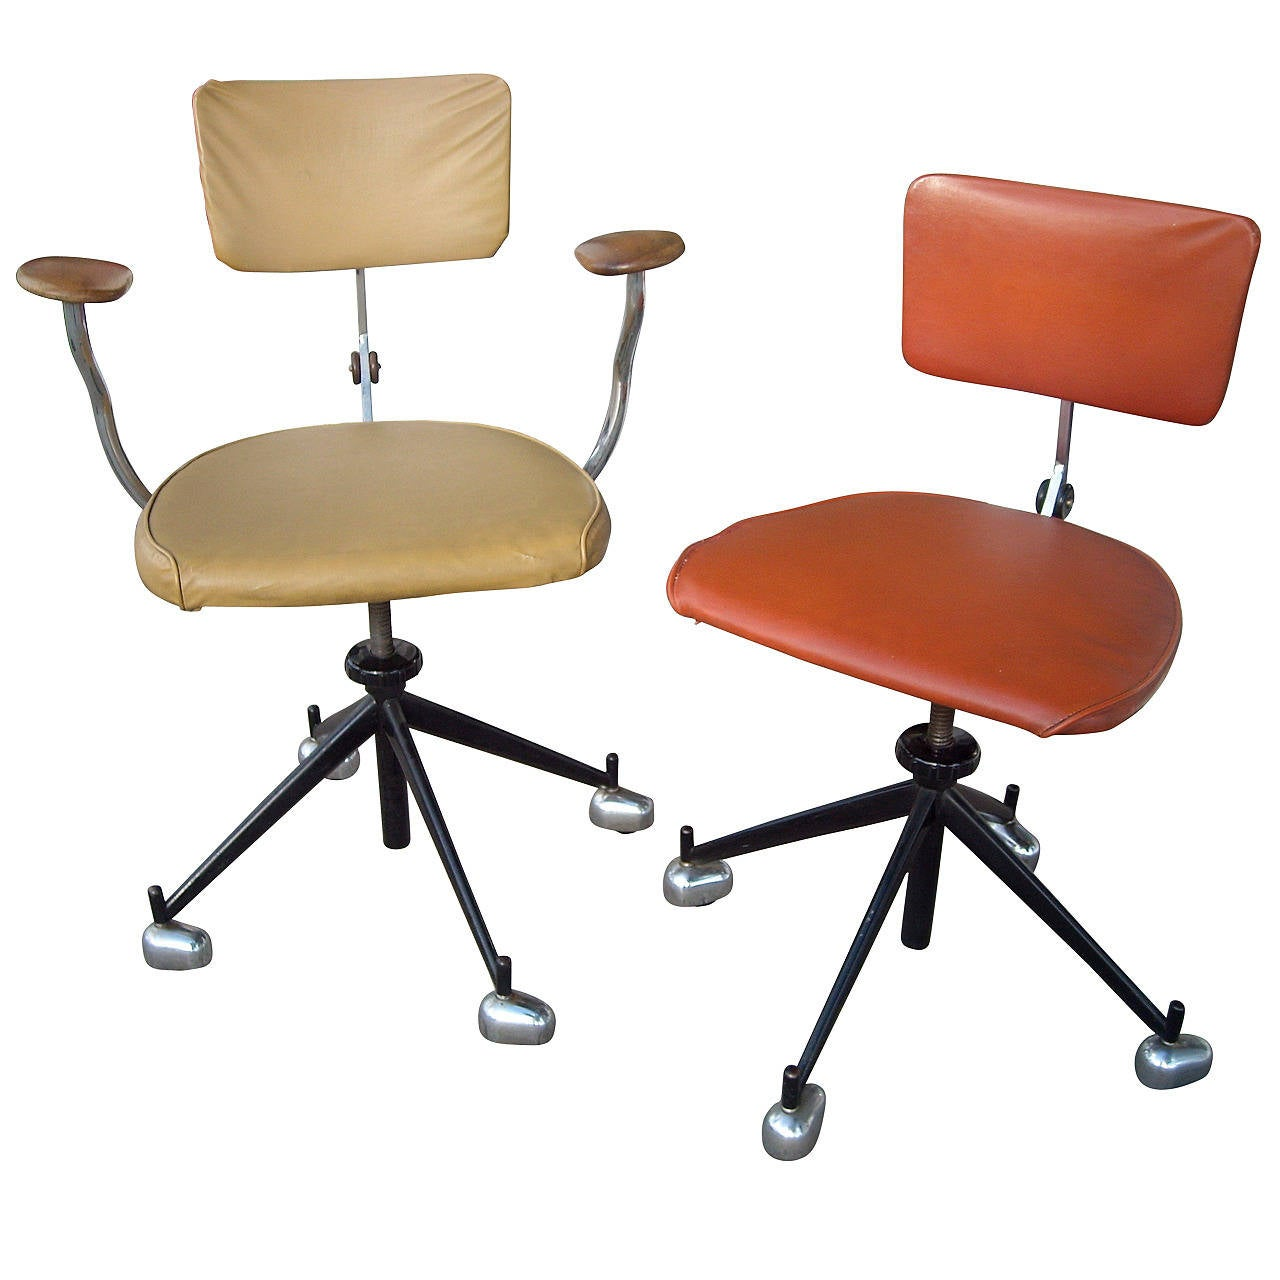 Kevi Chair Jørgen Rasmussen Two Industrial Modern Kevi Office Or Desk Chairs Adjustable